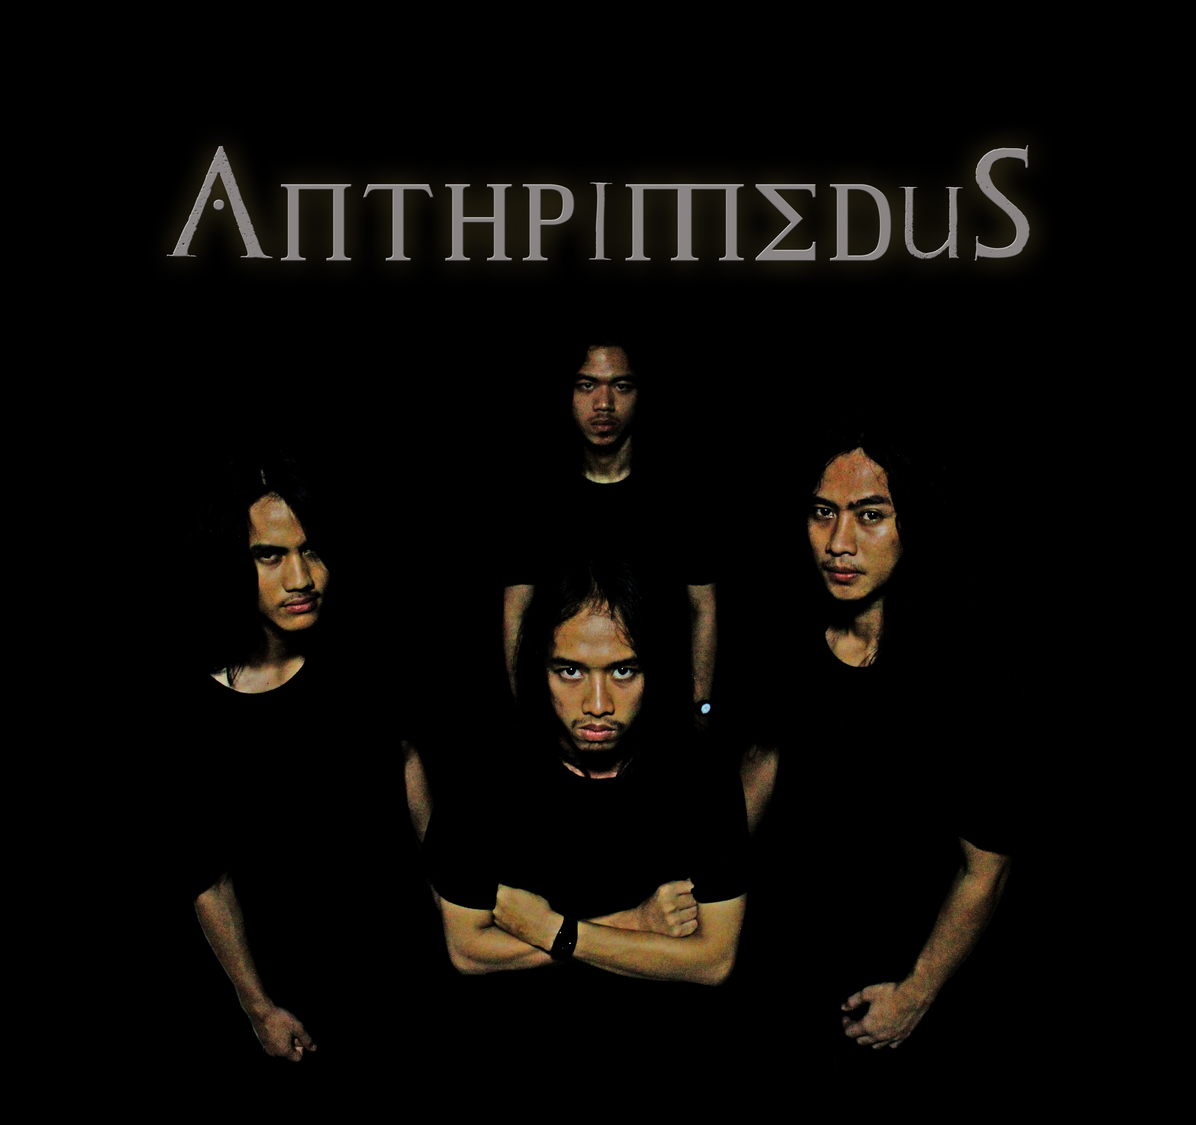 Anthpimedus Band Death Metal / Thrash Metal Bekasi Foto Personil Logo Artwork Wallpaper